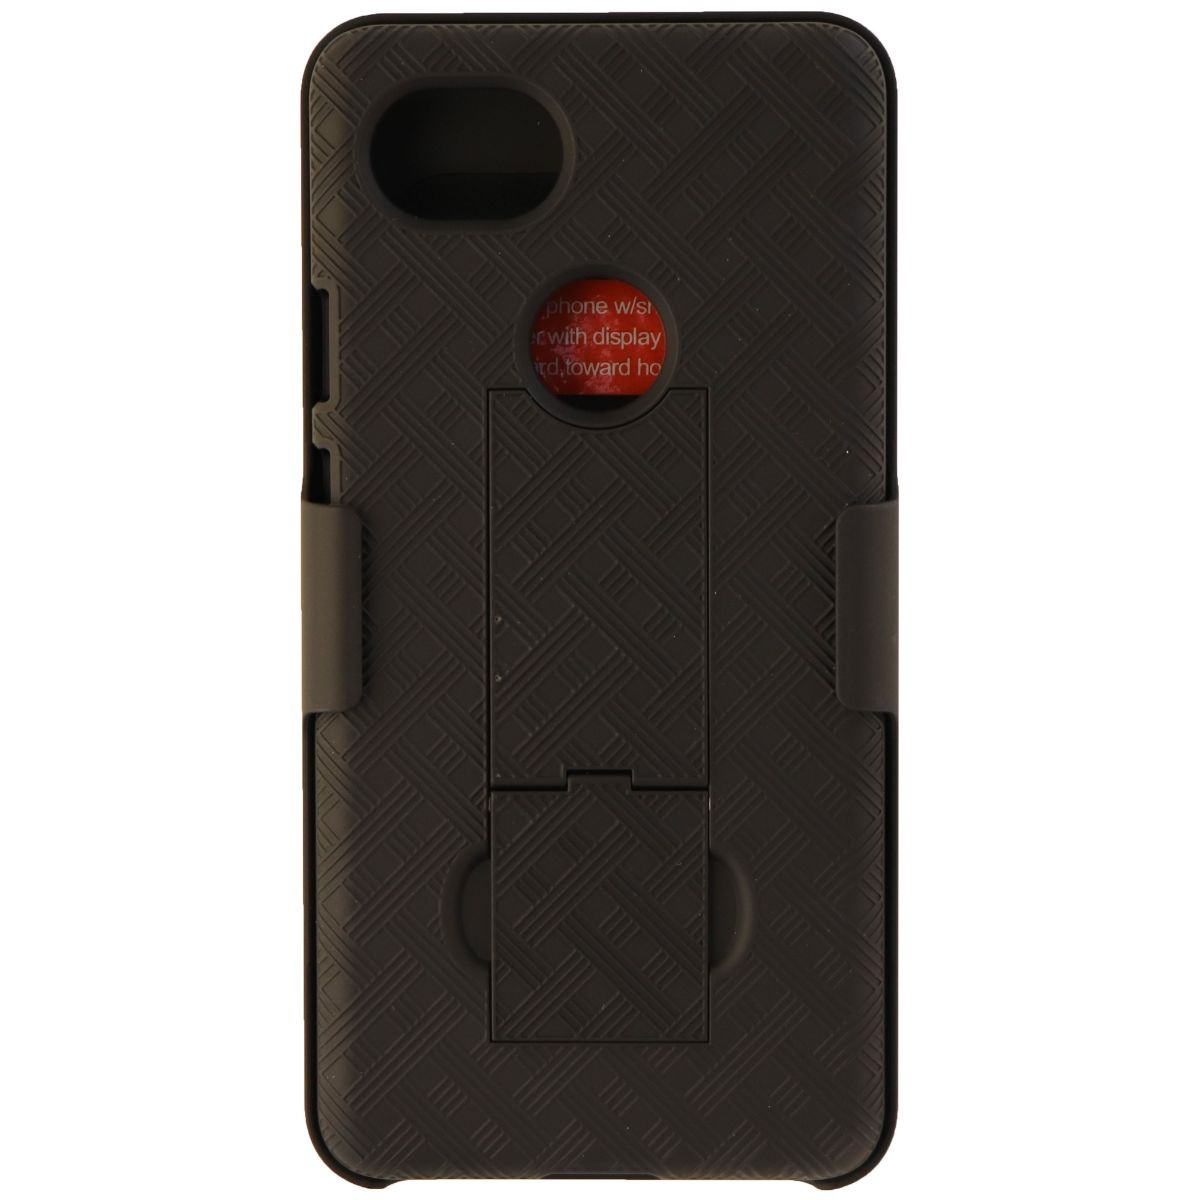 Verizon Kickstand Shell Case and Holster Combo for Google Pixel 2 - Black